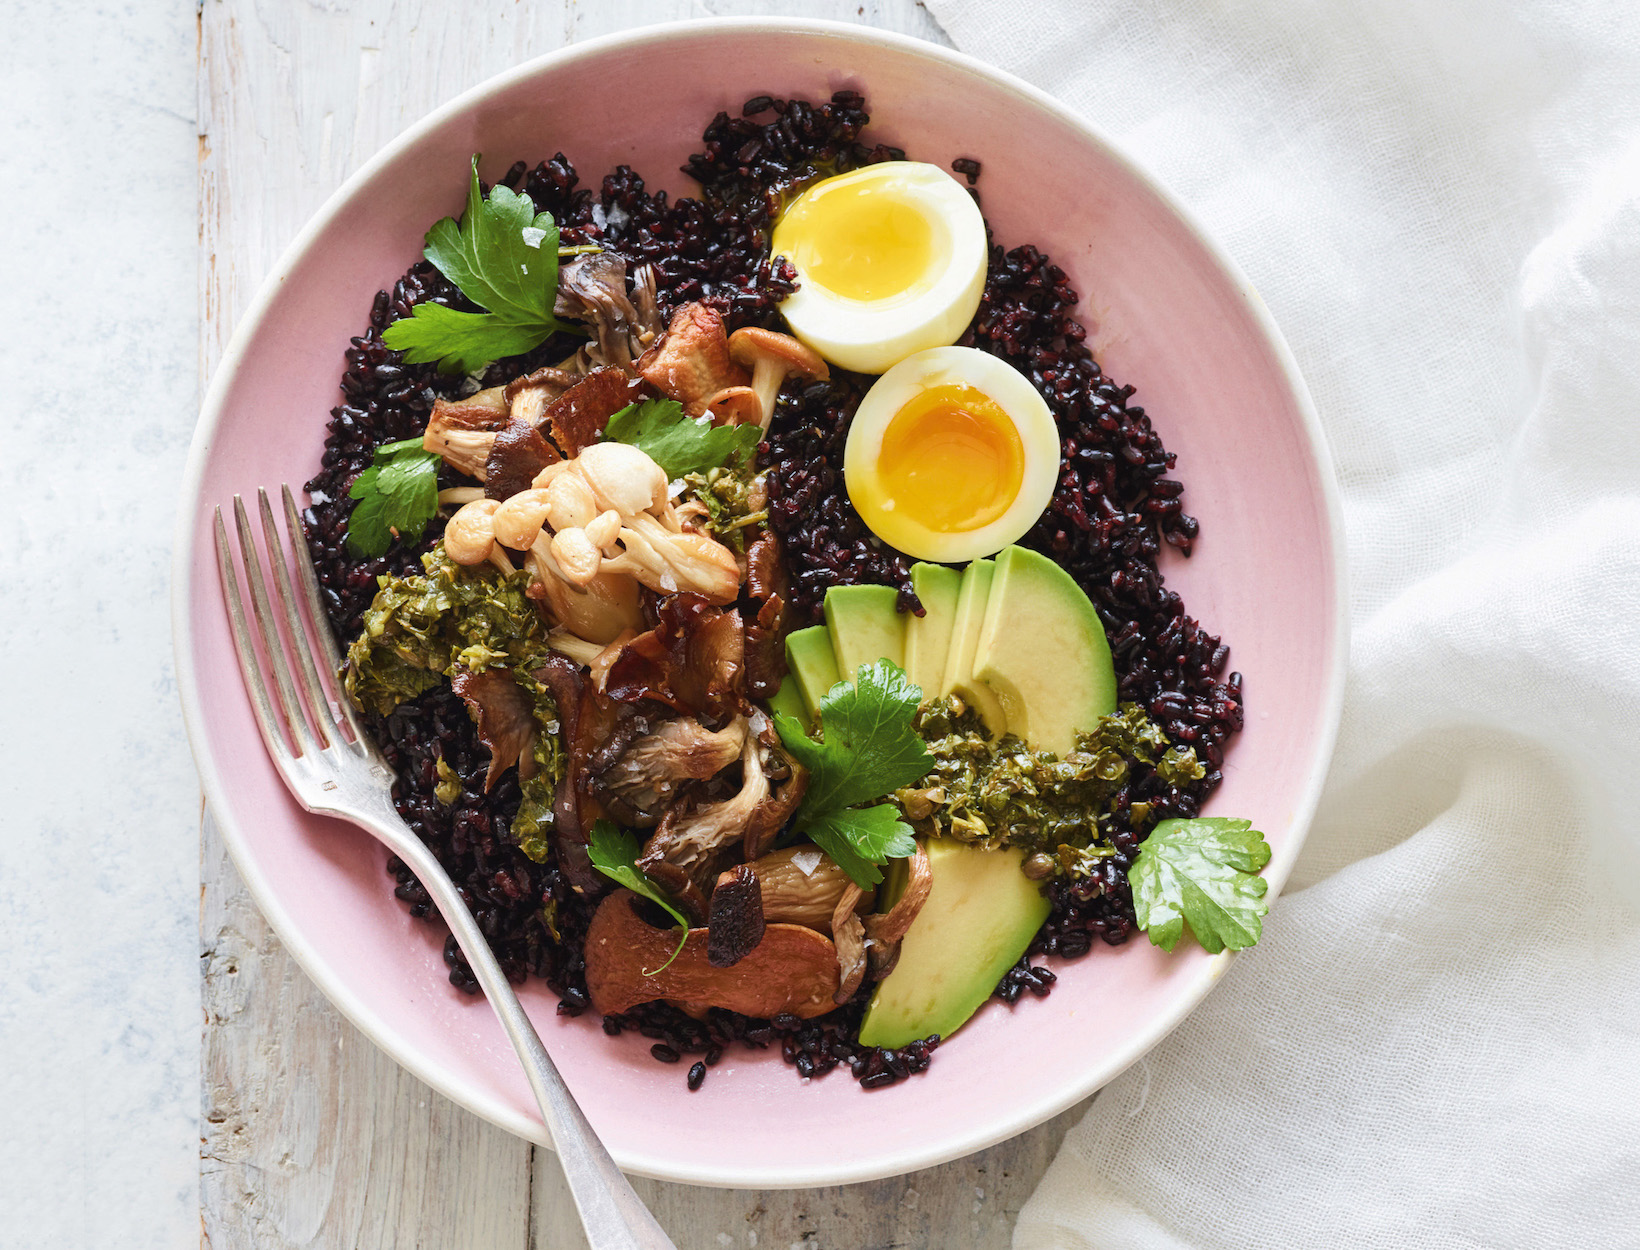 Black Rice and Roasted Mushroom Bowl